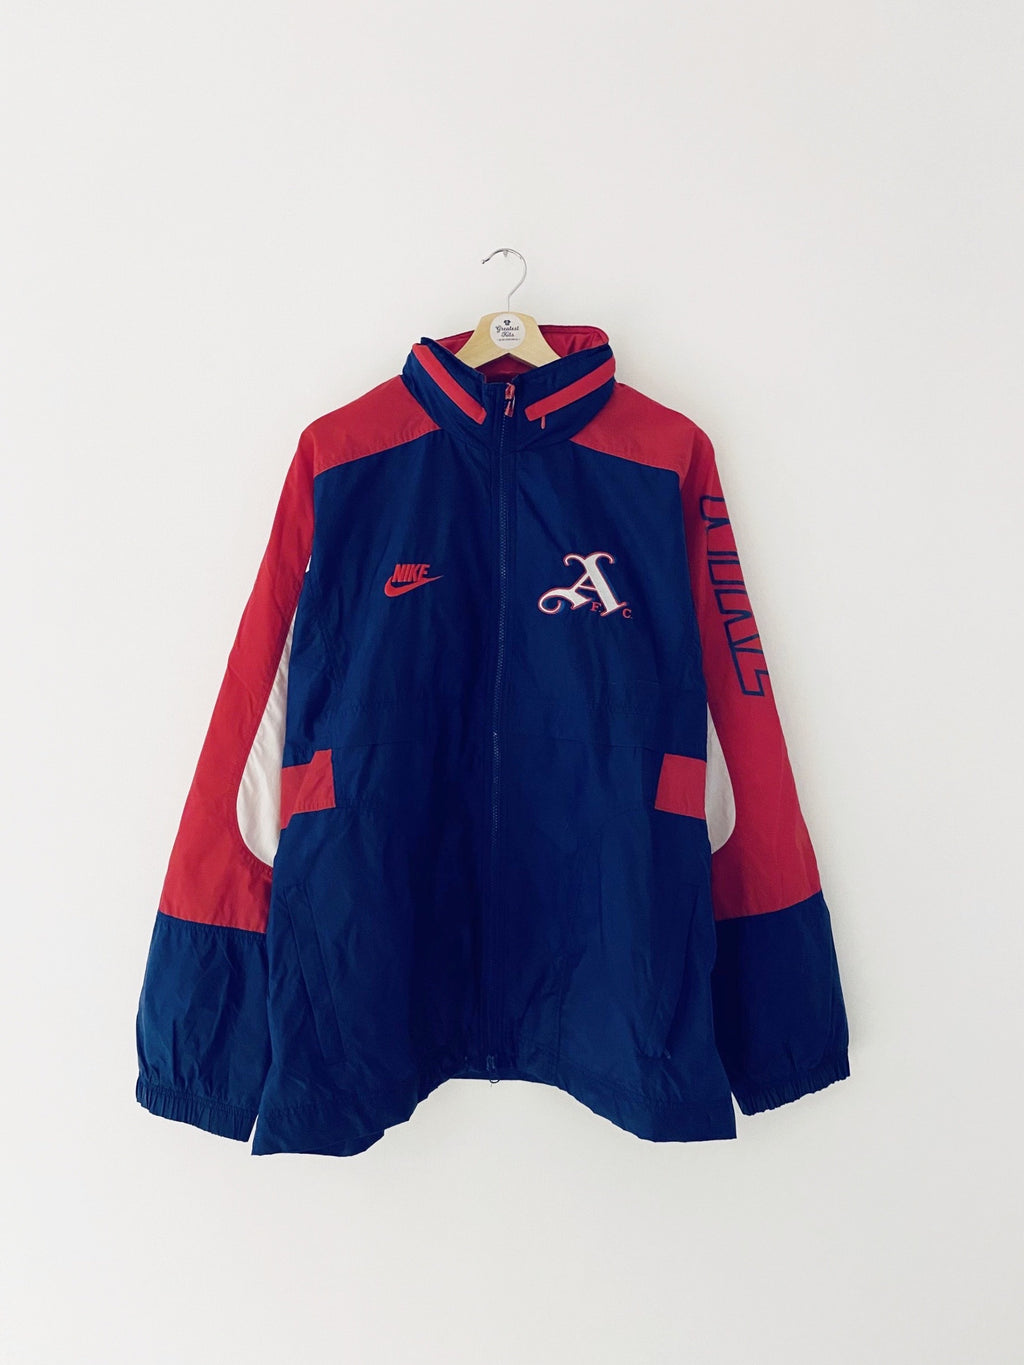 1994/96 Arsenal Rain Jacket (L) 6.5/10